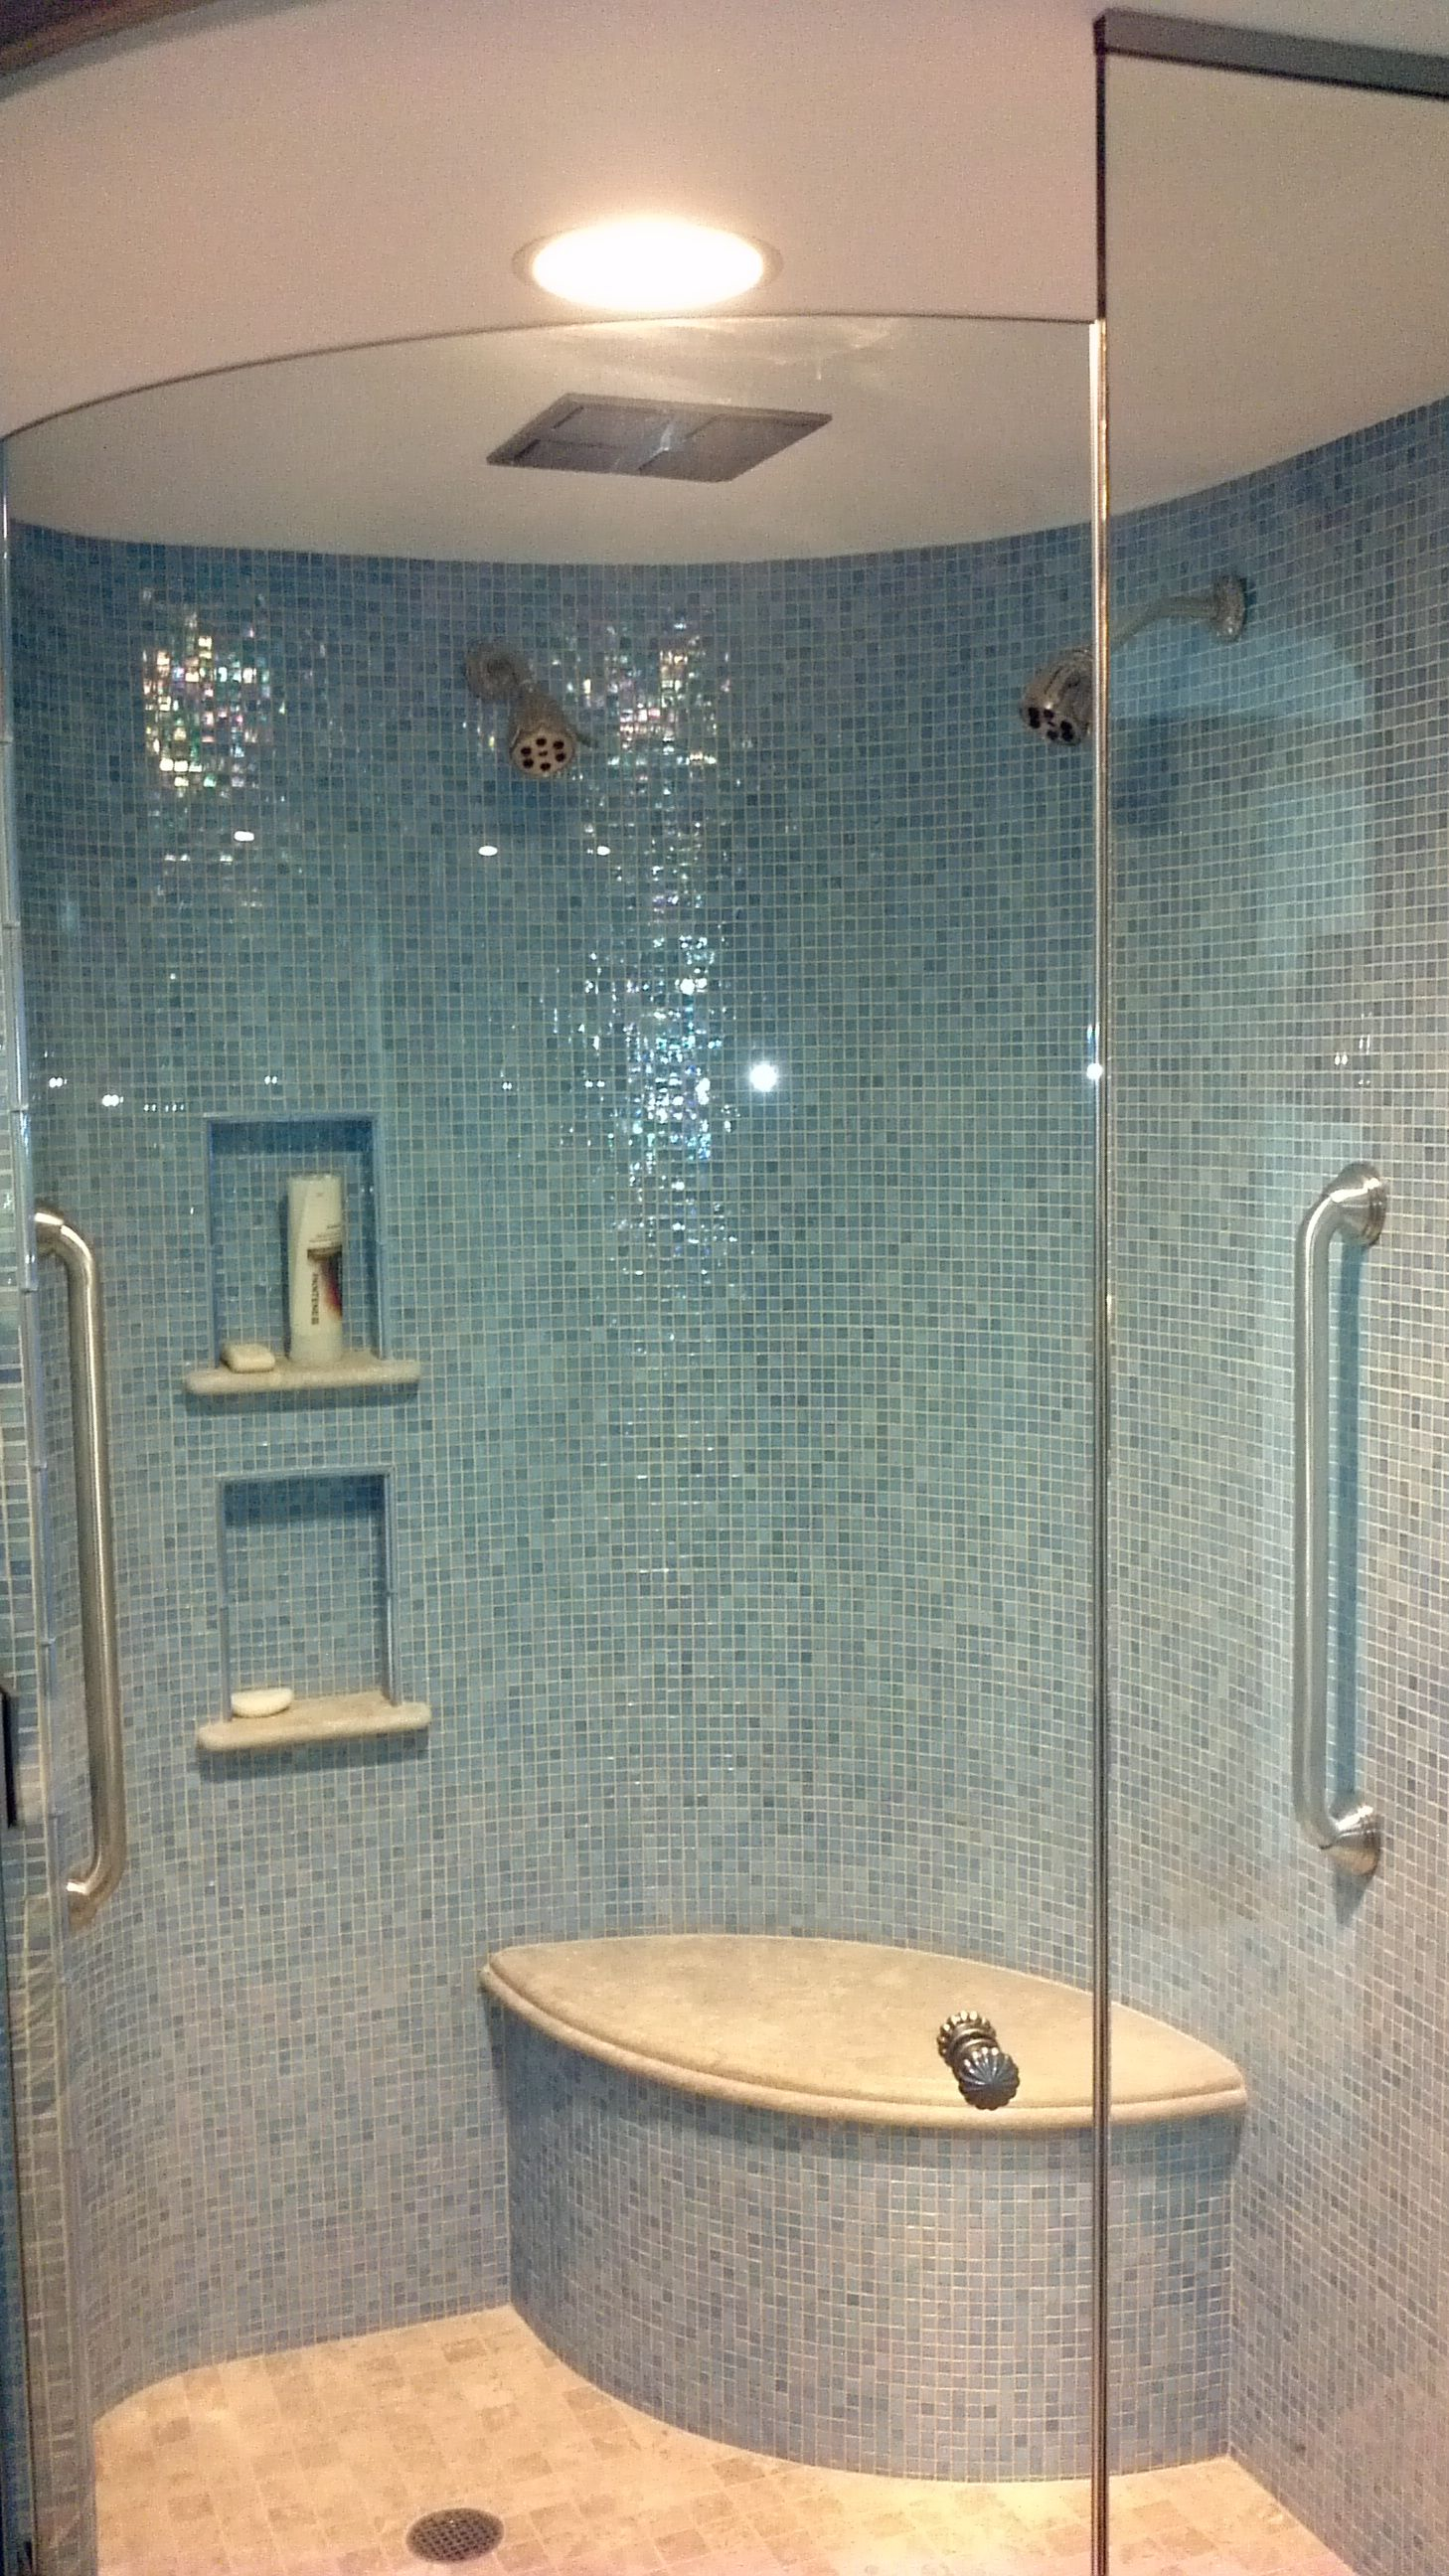 Superb Bathroom Wall Glass Tile Ideas Part - 14: Iridescent Blue Glass Tile Shimmers On Curved Shower Walls!